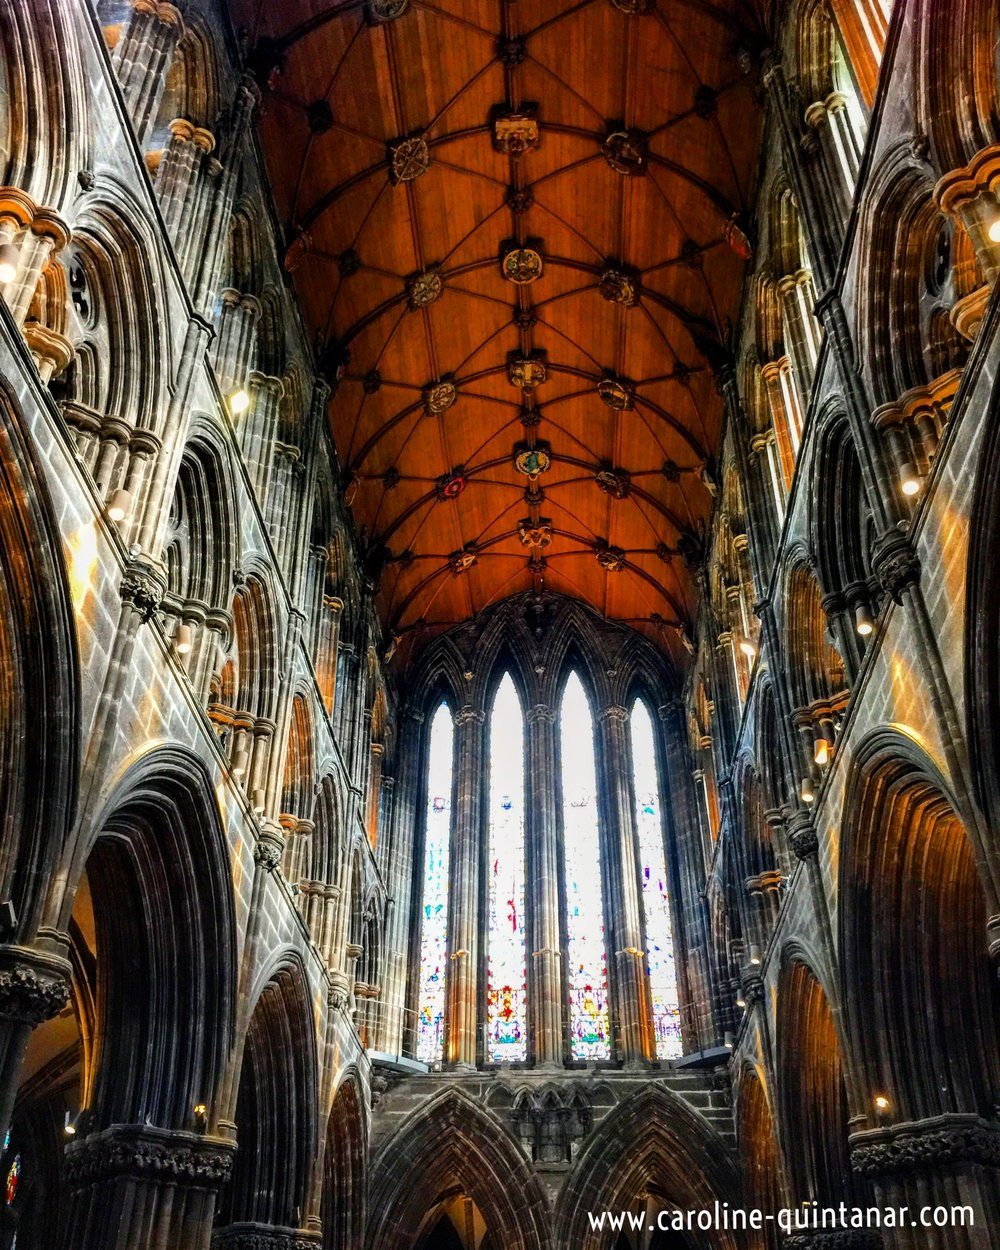 Interior of Glasgow Cathedral (St. Mungo's)